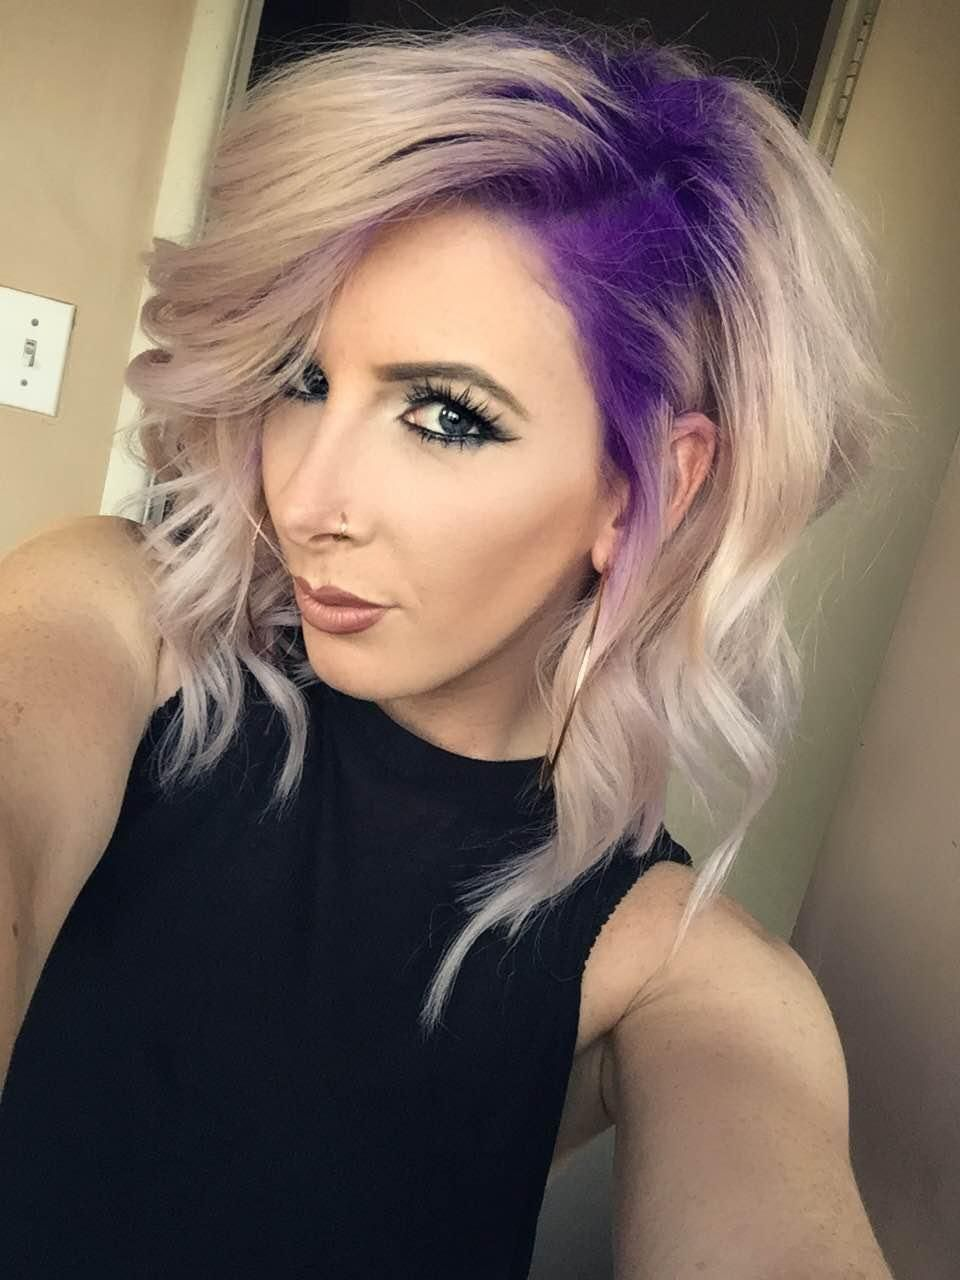 Stylist Selfie Formula For This Gorg Purple To Platinum Melt